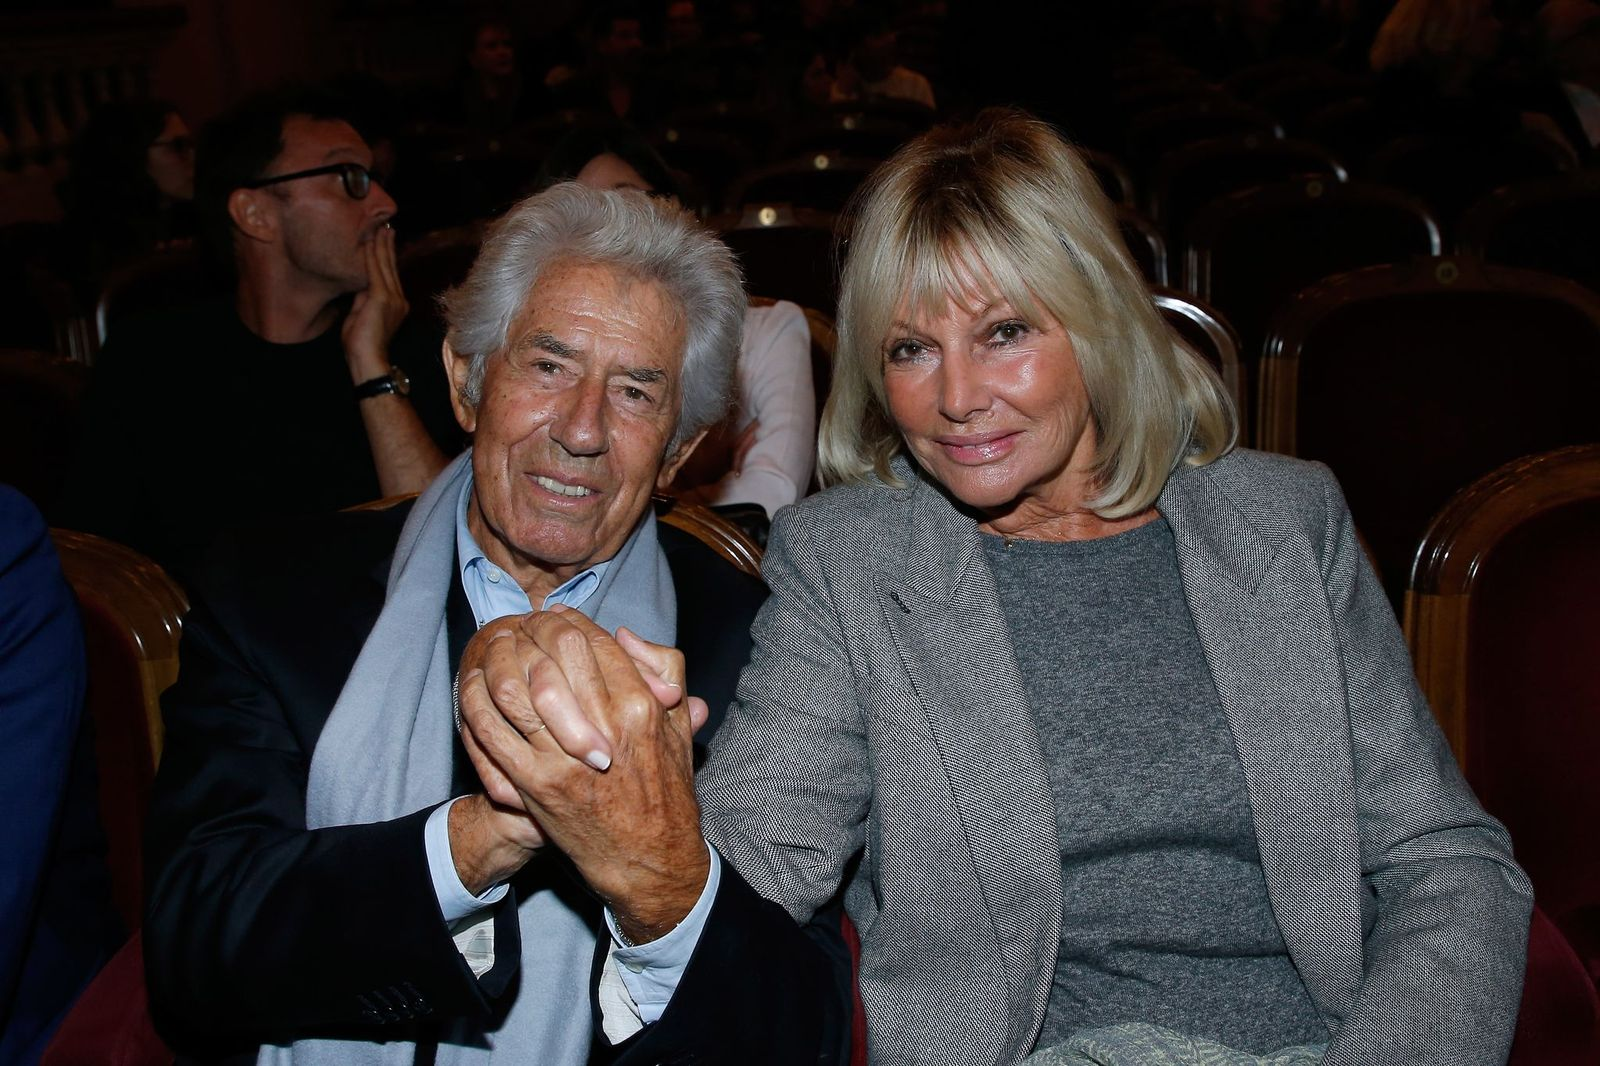 Le journaliste Philippe Gildas et sa compagne Maryse   Photo : Getty Images.